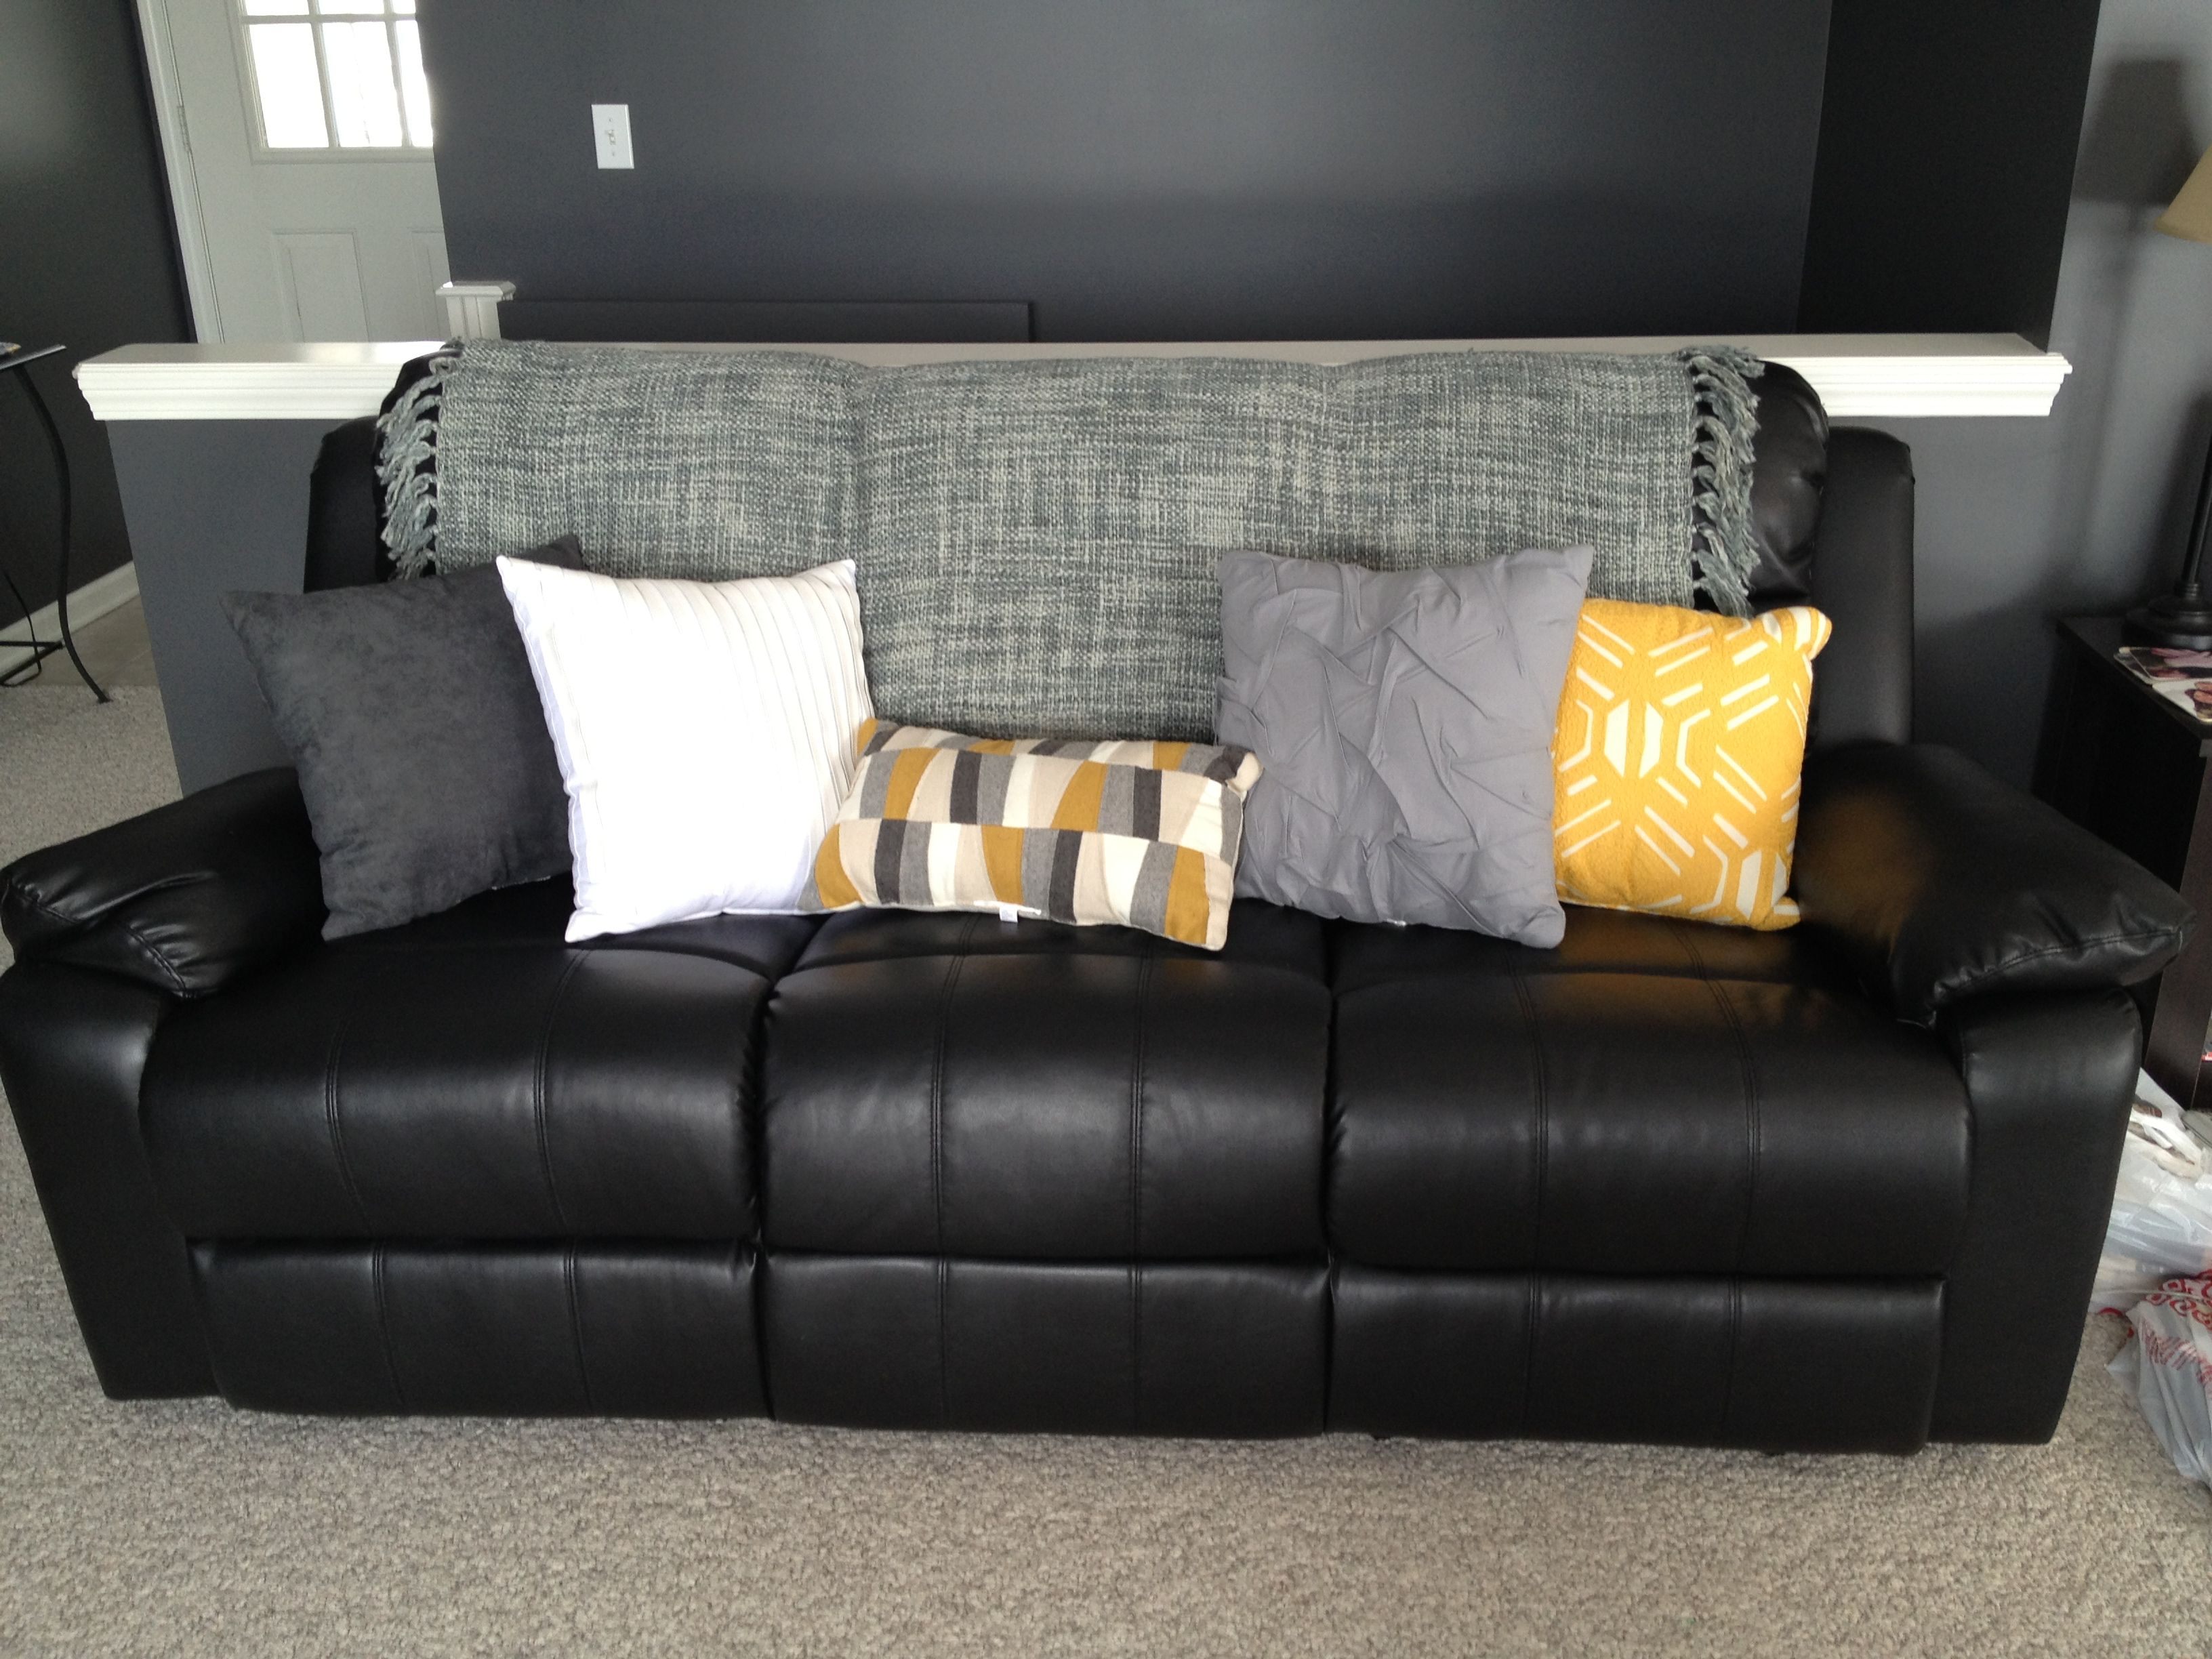 lighten up a black leather couch with bright pillows and a throw rh pinterest com